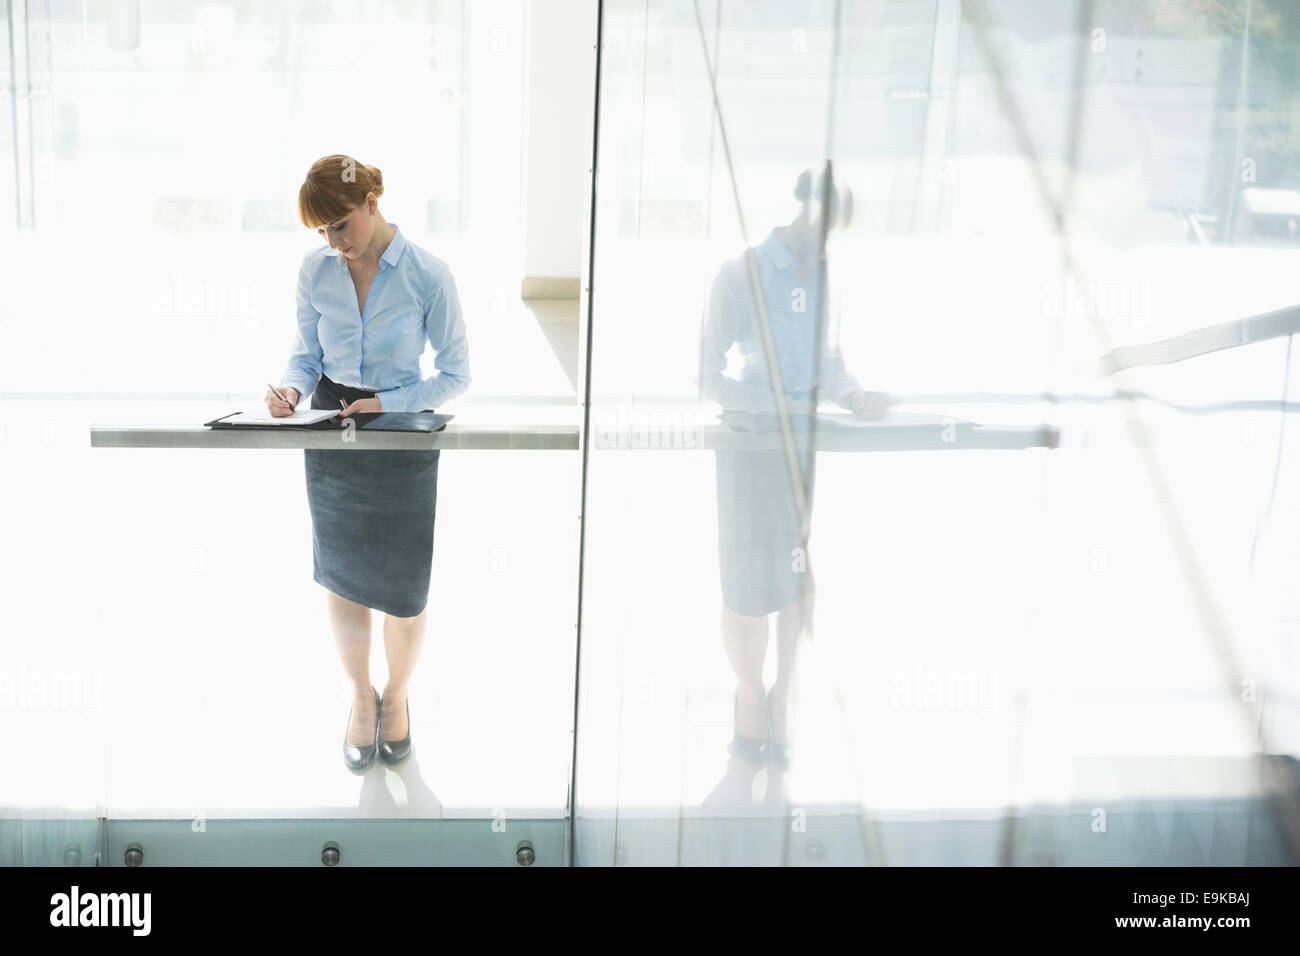 Full-length of businesswoman writing on document in office Stock Photo